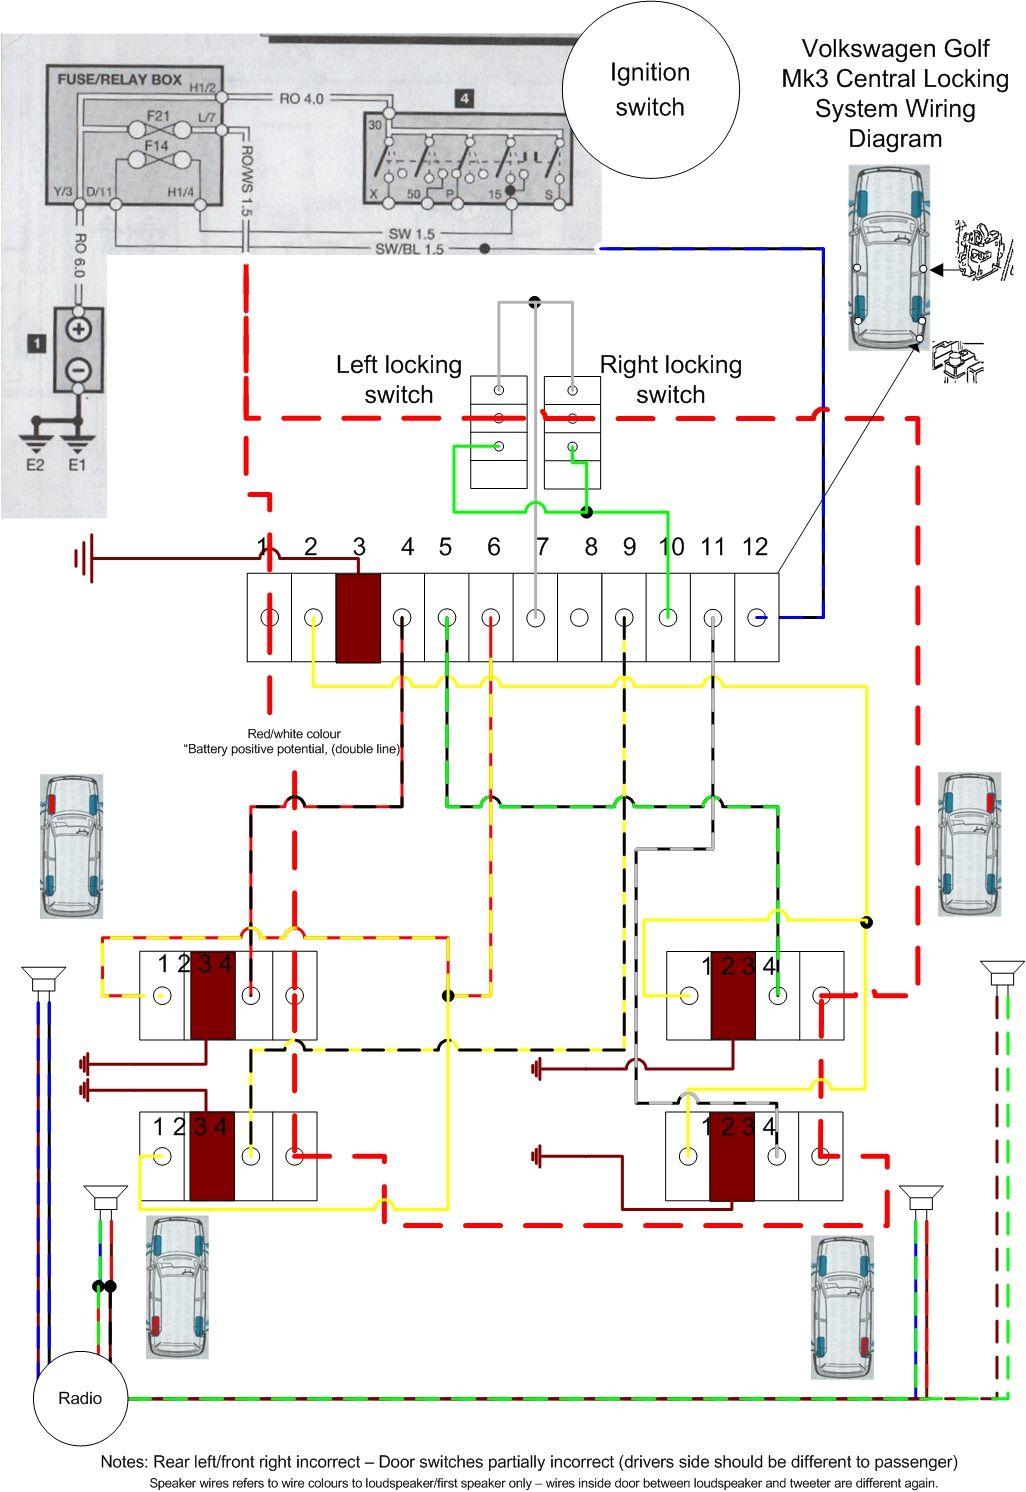 Vw Ignition Switch Wiring Diagram Vw Up Diagram Volkswagen Up